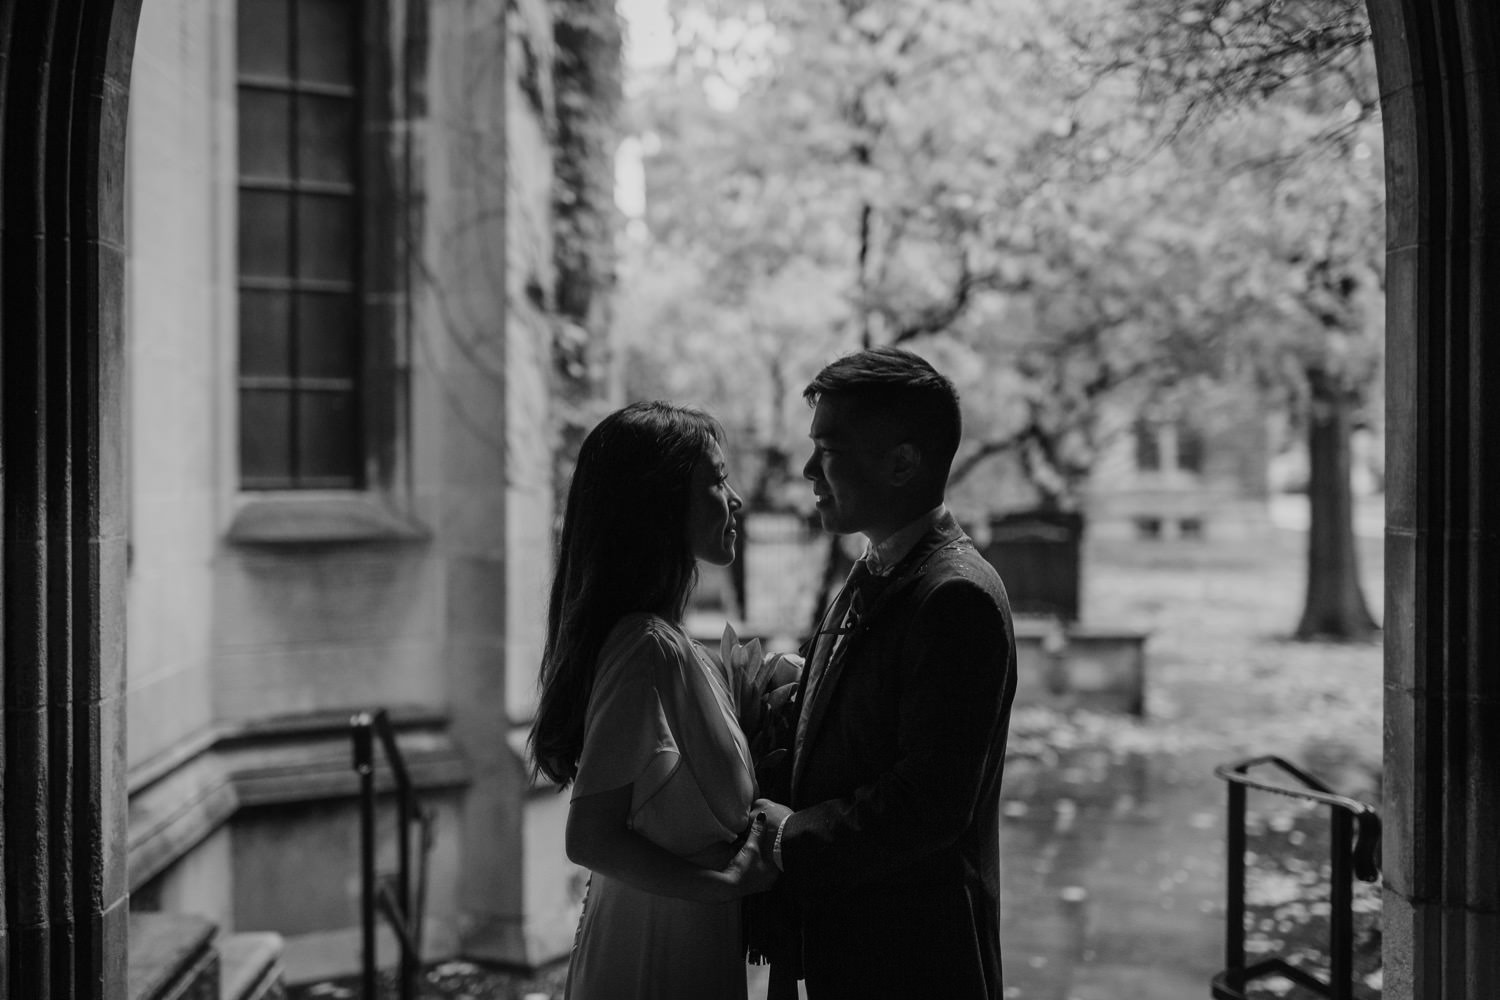 artistic portrait of the bride and groom at university of Chicago